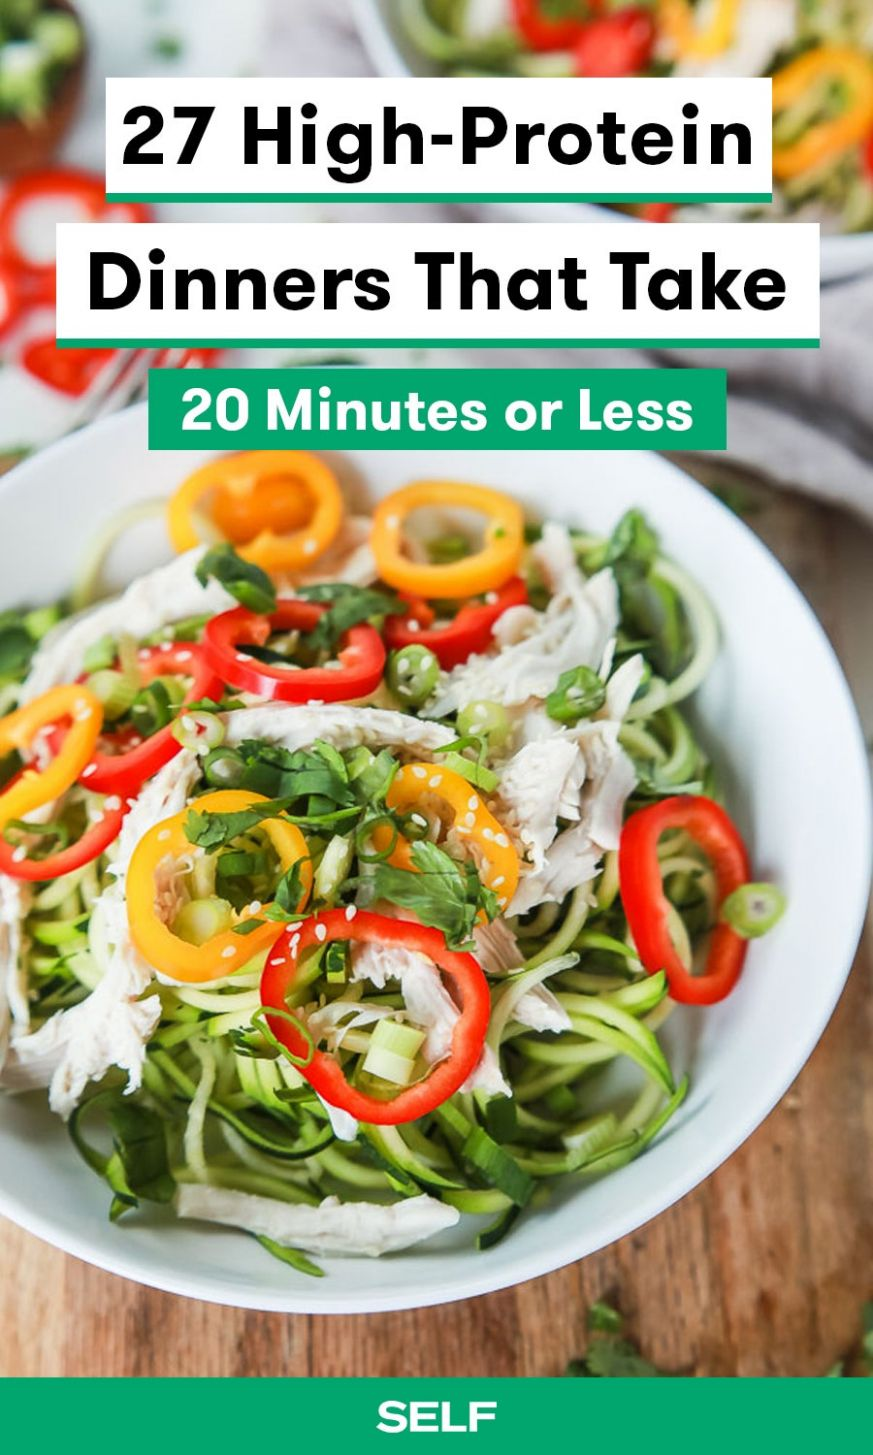 12 High-Protein Dinners You Can Make In 12 Minutes Or Less | SELF - Dinner Recipes High In Fiber